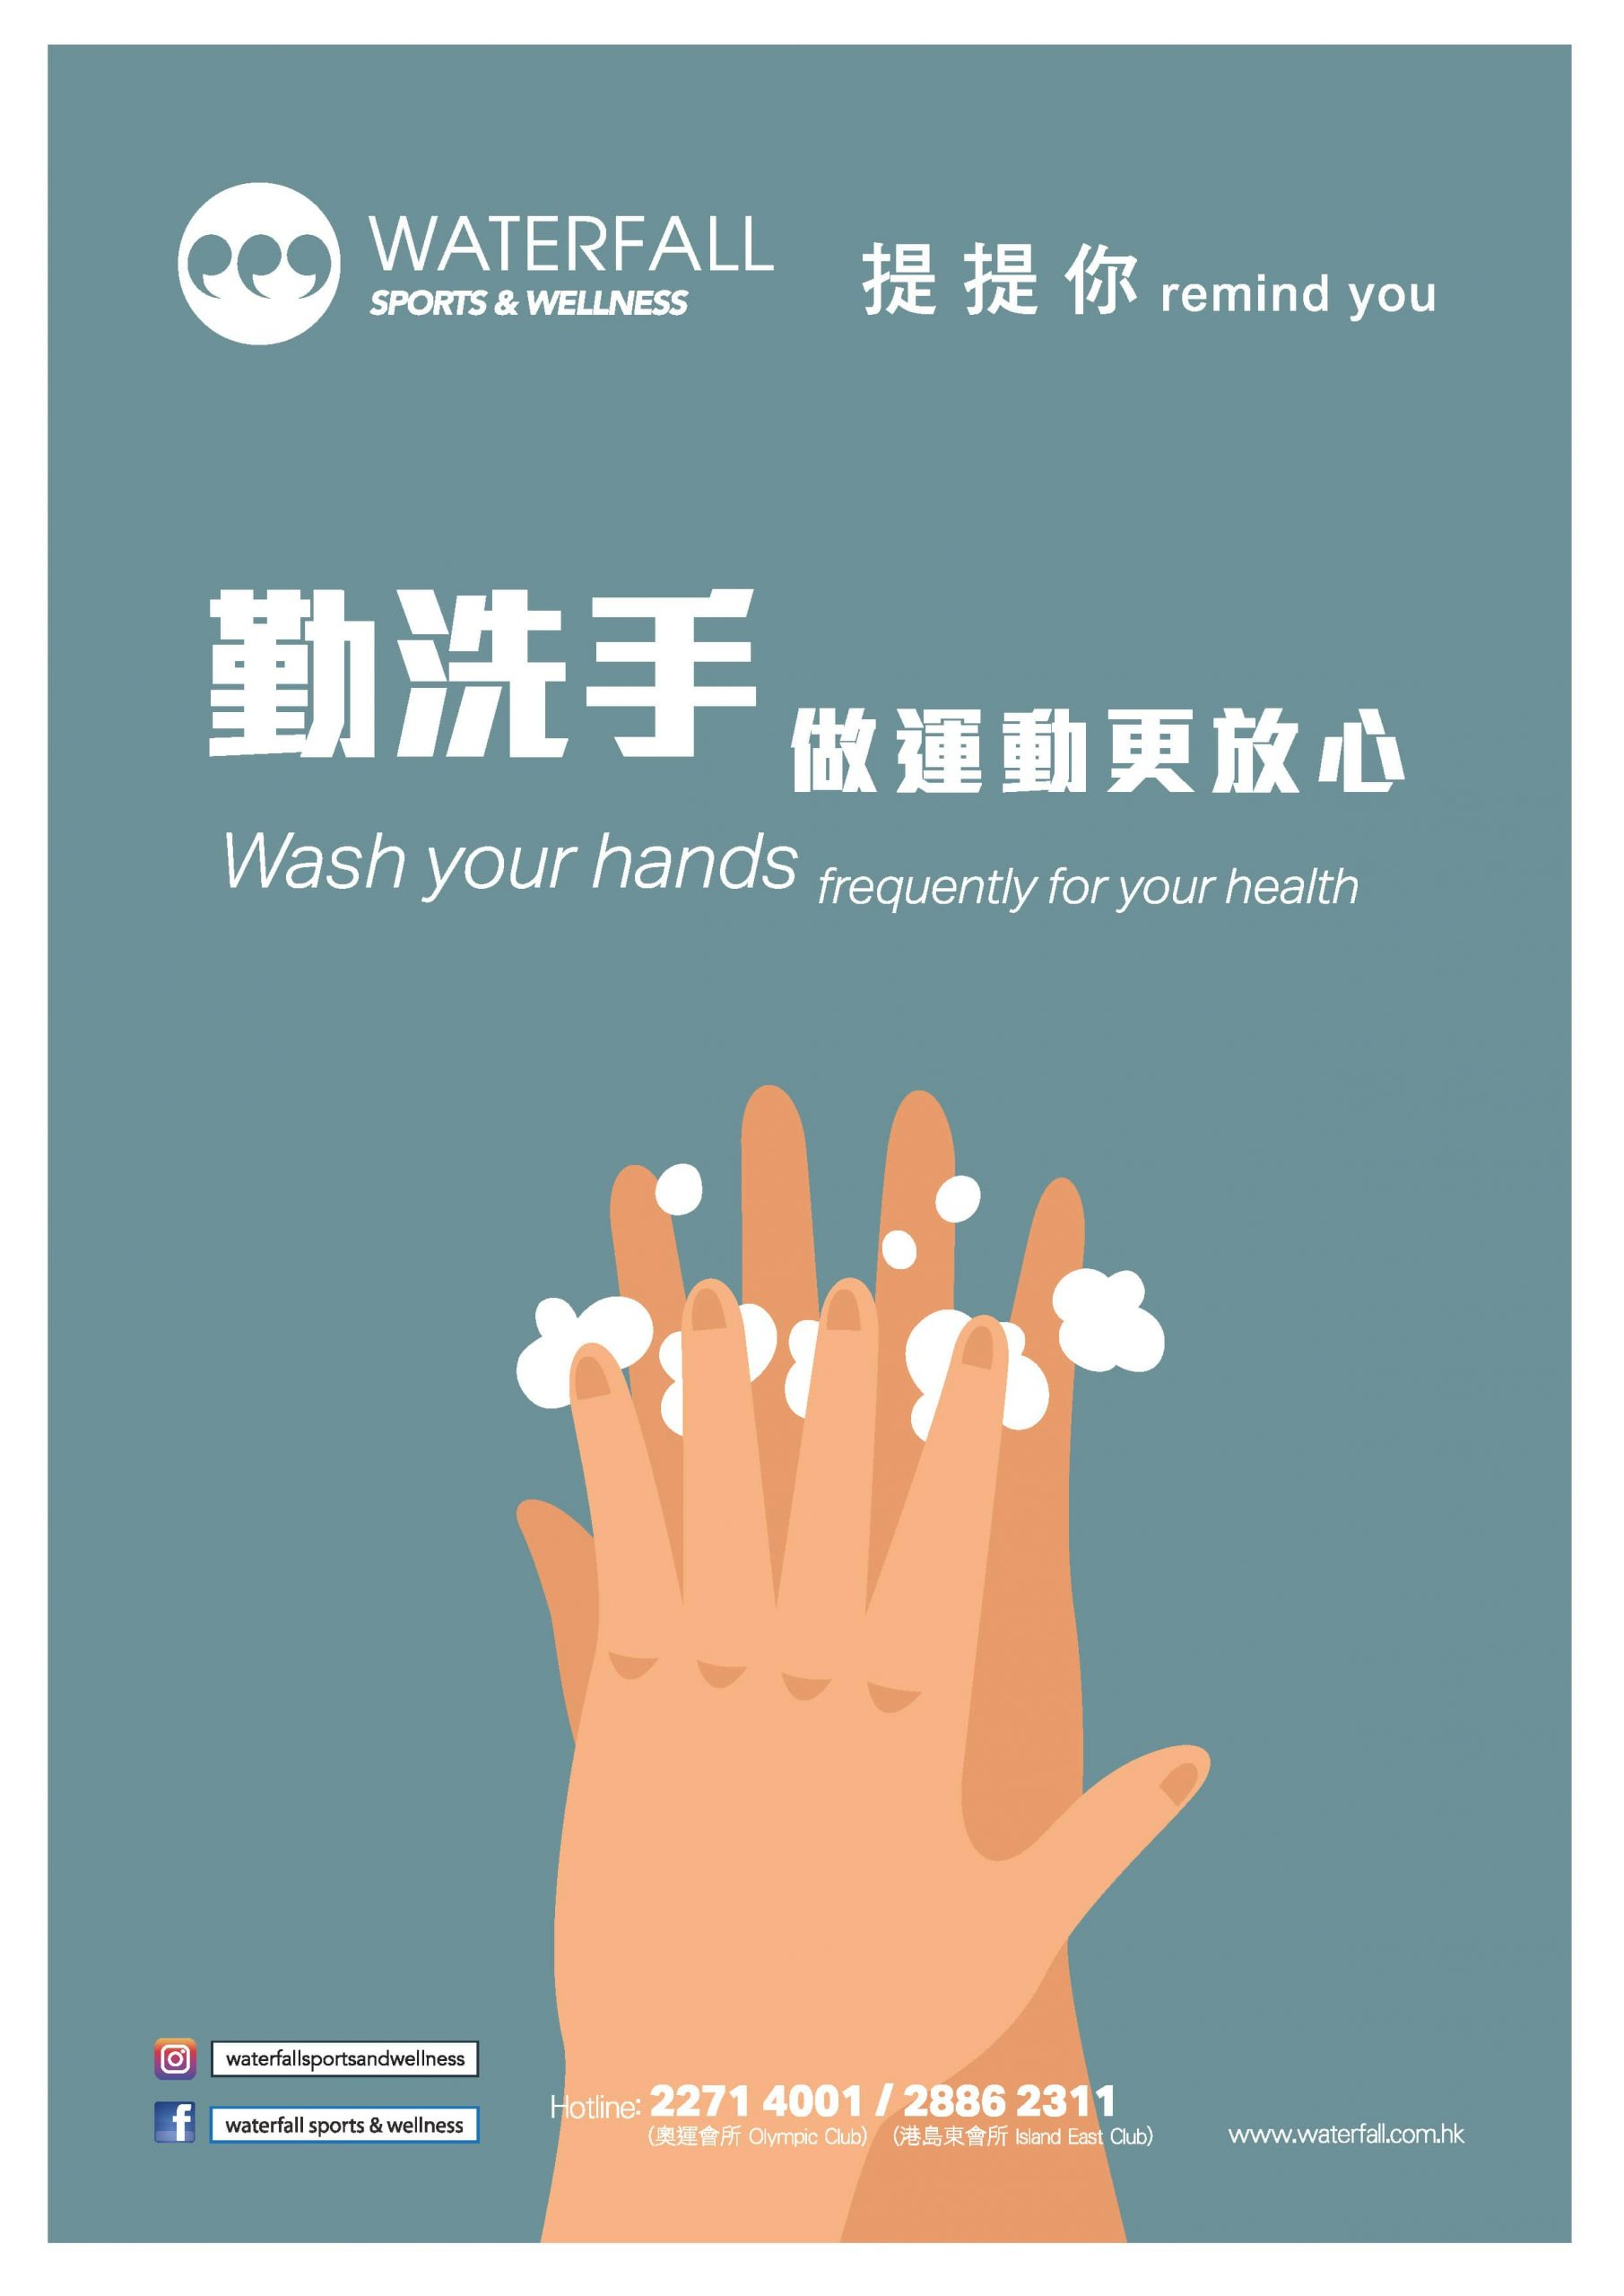 Wash your hands frequently for your health